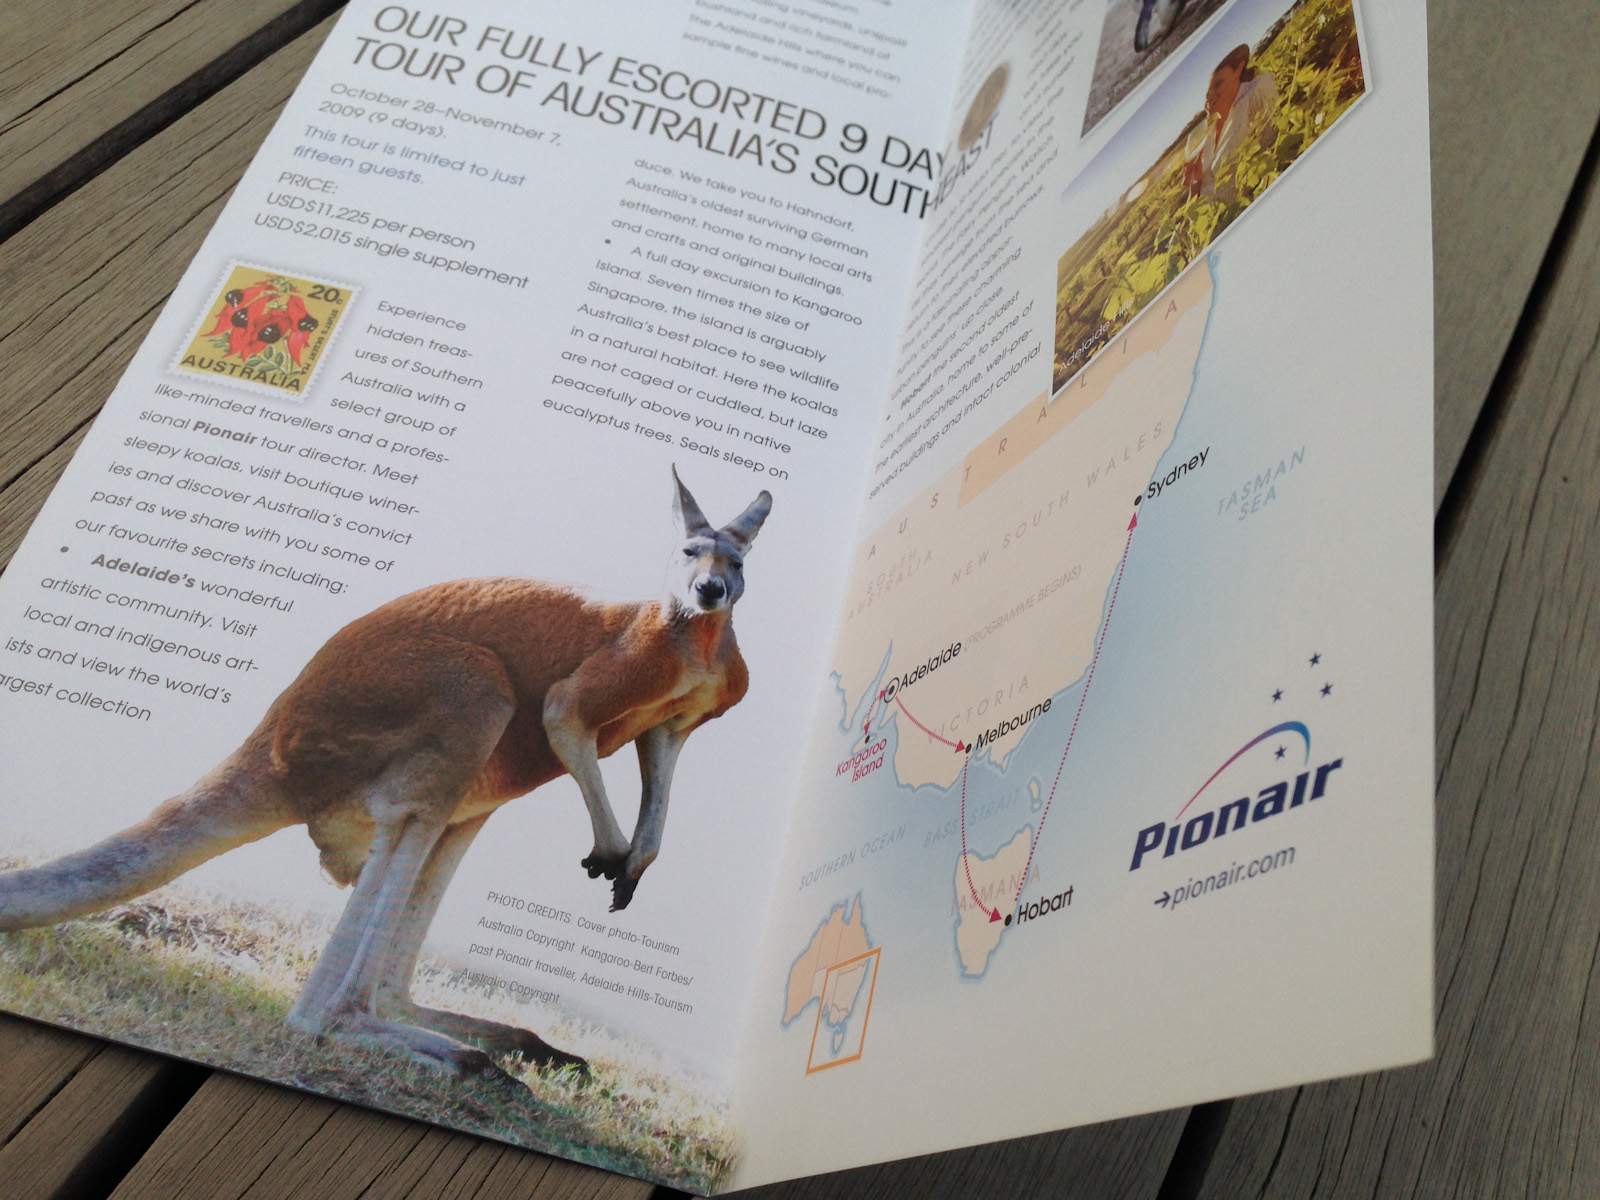 Secrets of Southern Australia, one of a set of 3 escorted tour direct mail brochures designed for the 2009 direct mail campaign to Pionair's past traveller database and affluent travel agents in the U.S. and the rest of the world